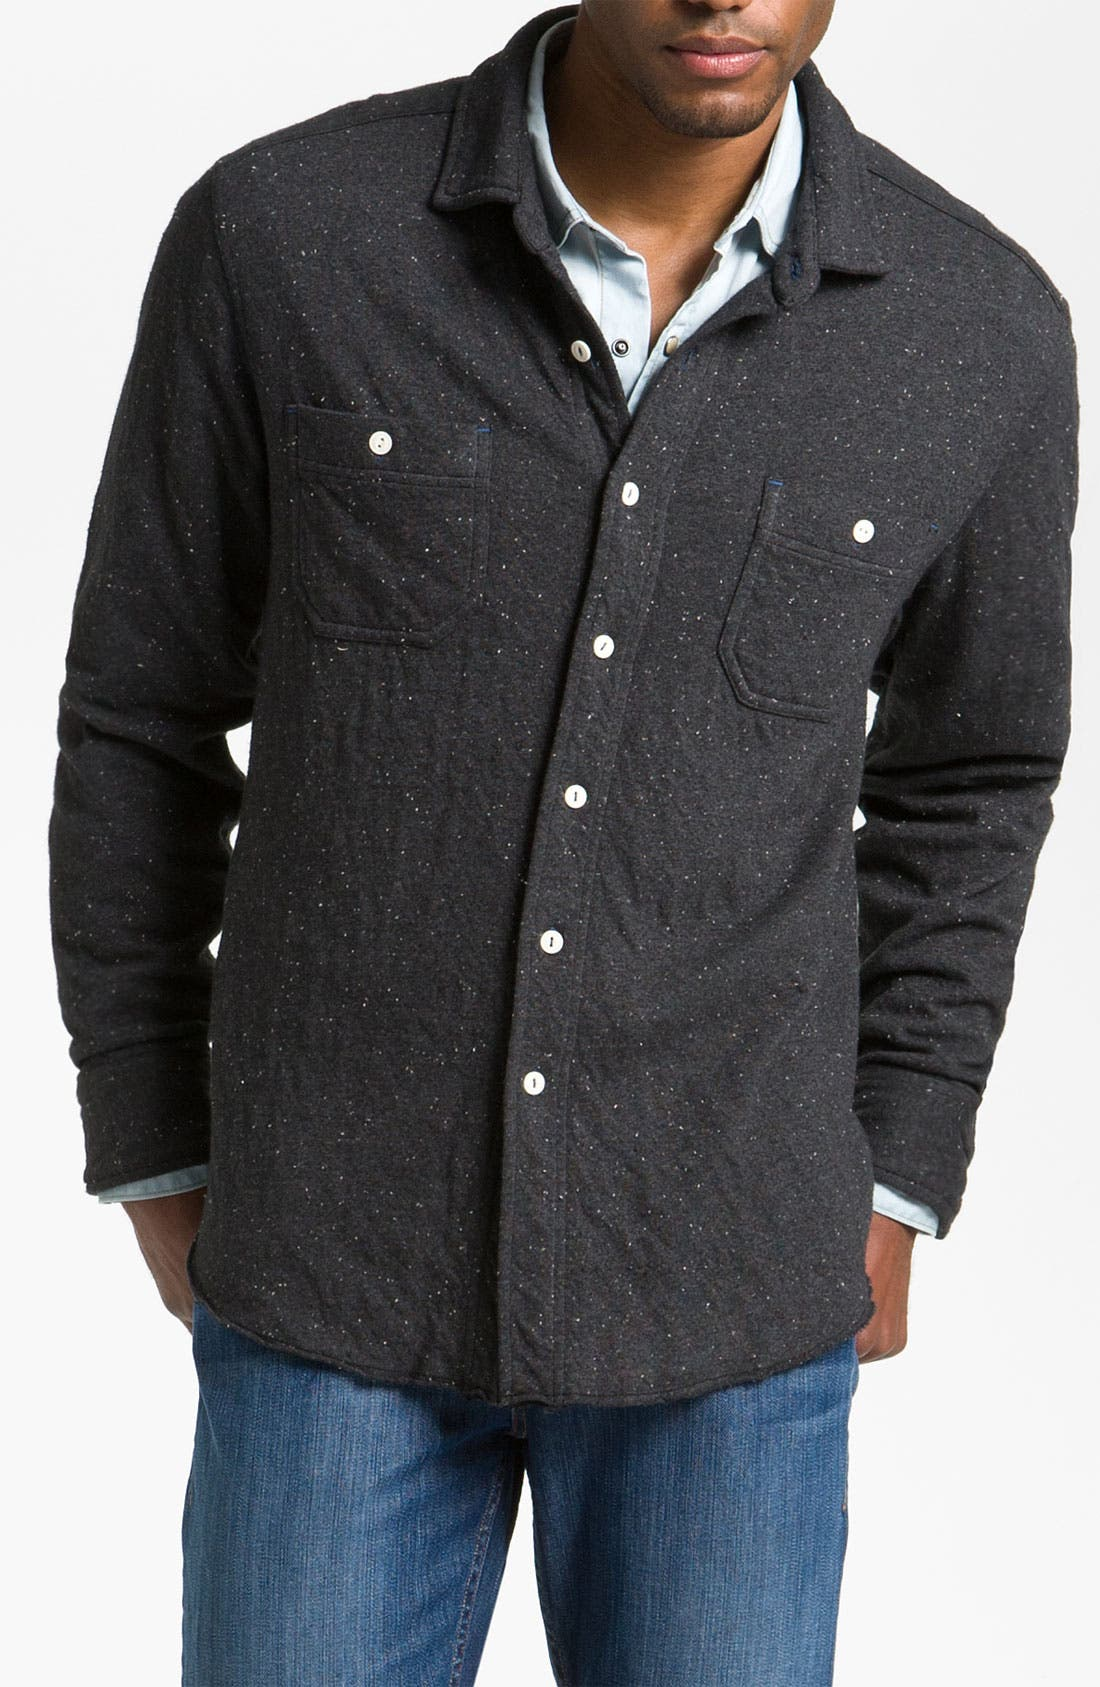 Main Image - Tommy Bahama Denim Double Knit Jacket